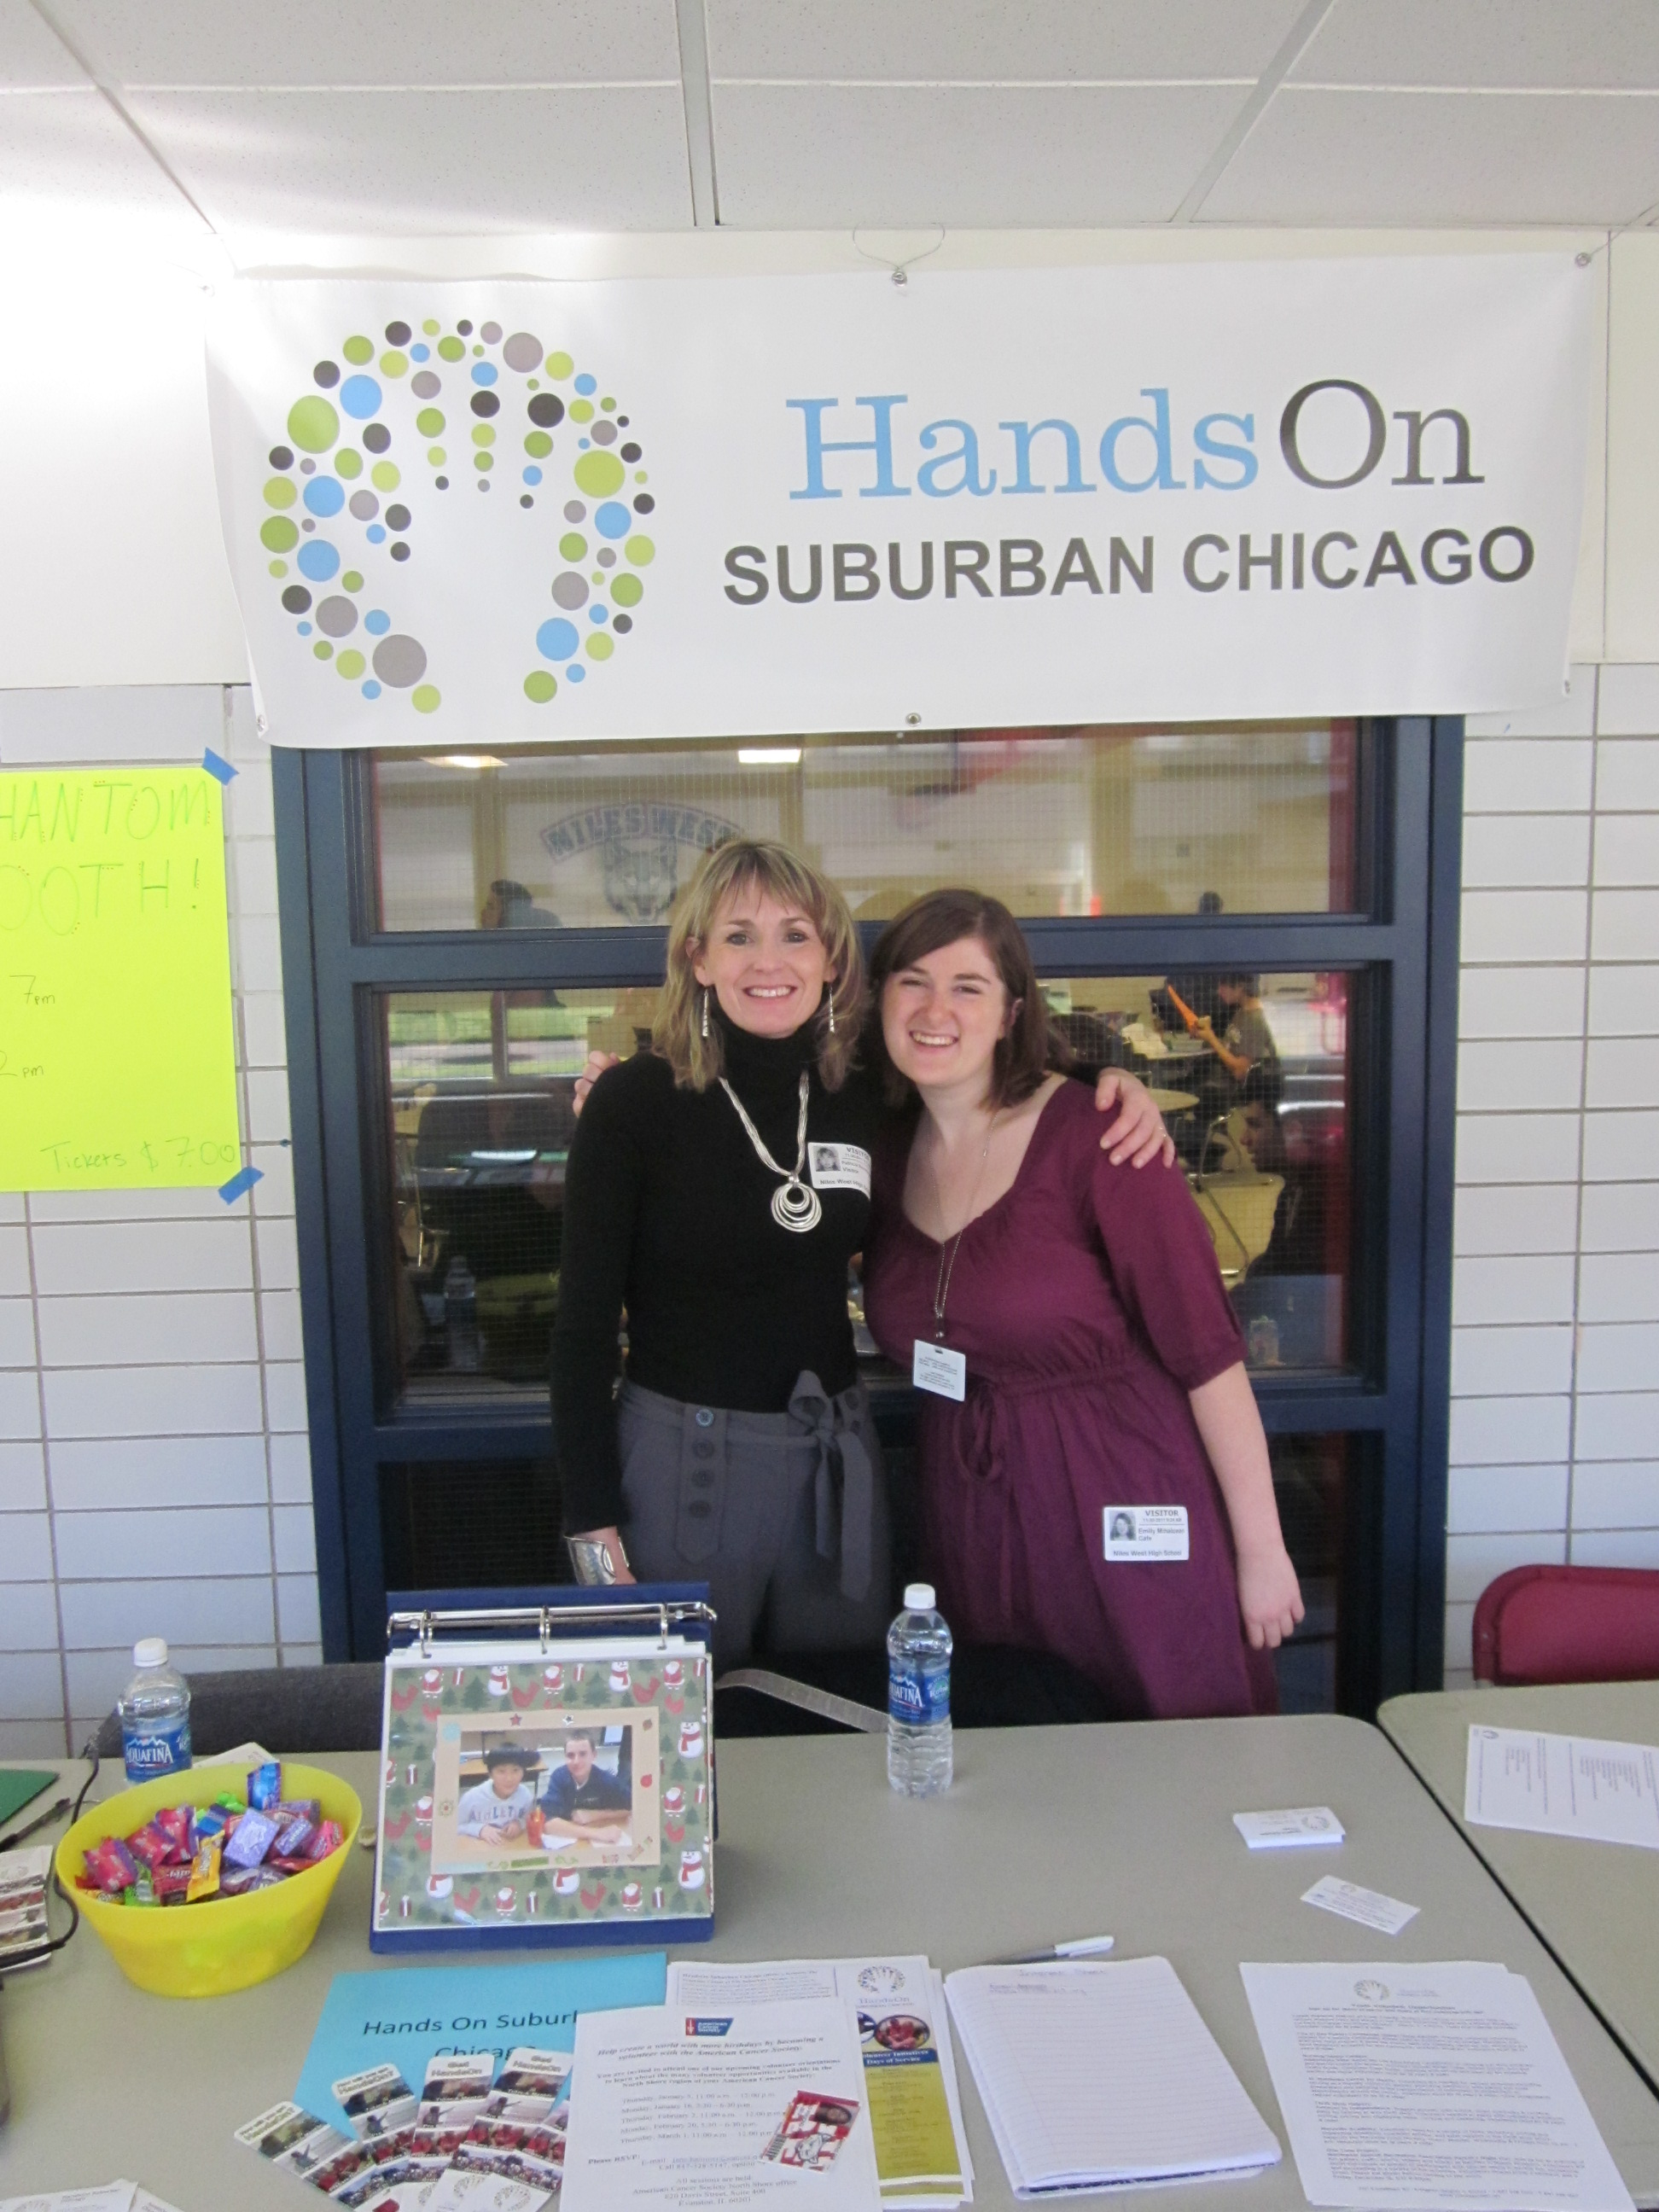 Patty Neuswanger And Emily Mihalcean Represent HandsOn Suburban Chicago At Niles West Student Volunteer Fair